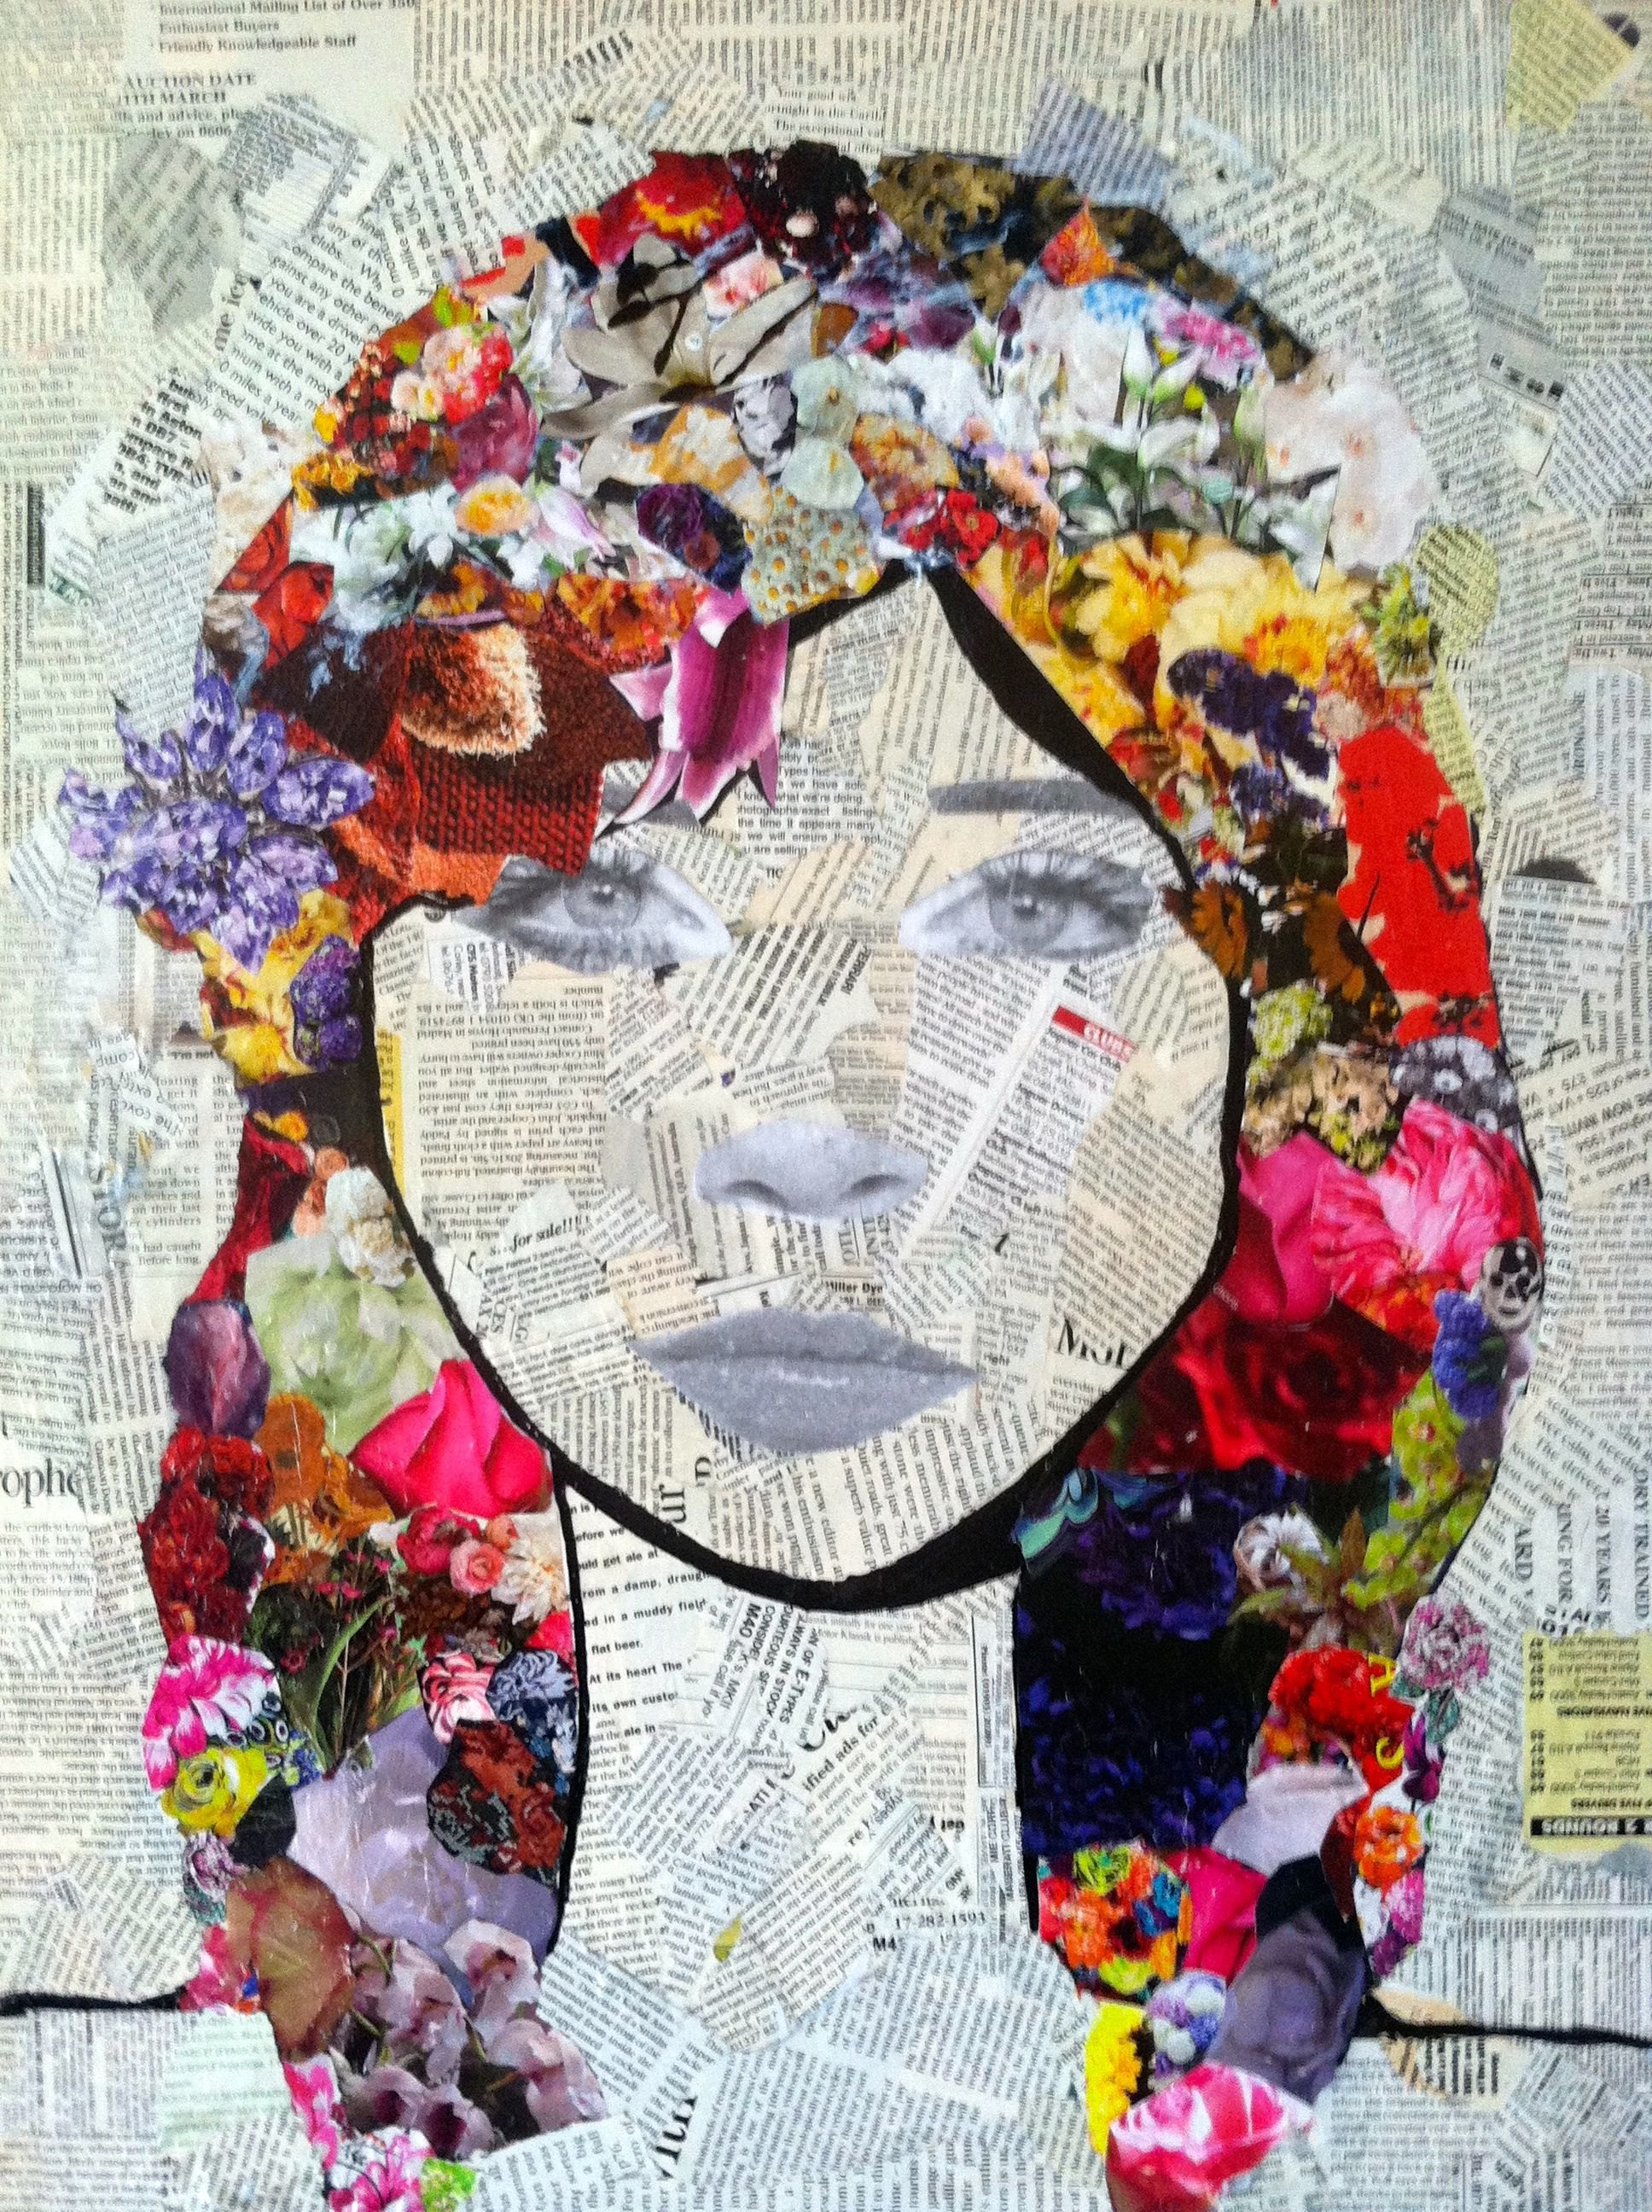 Mixed Media Art Torn Newspaper Bknd Draw Portrait On